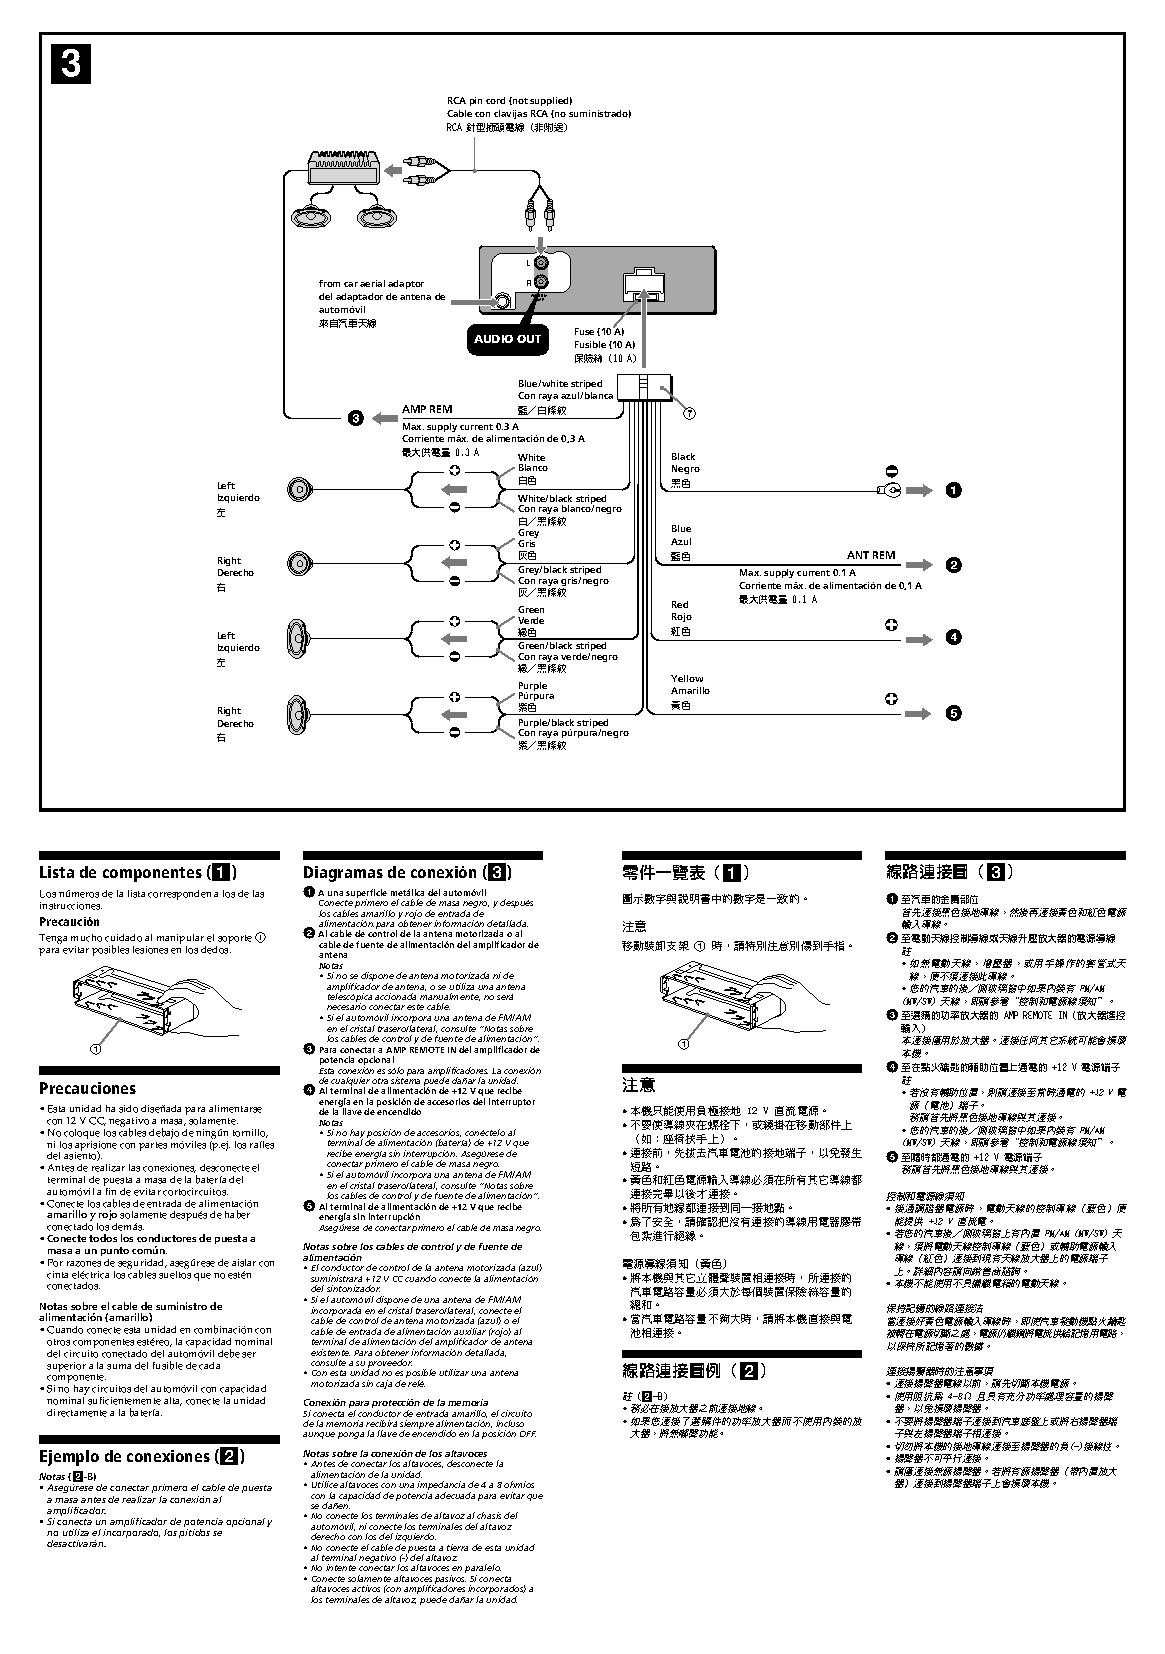 dimmable ballast wiring diagram dimmable lights wiring diagram sony car cd player wiring diagram awesome sony xplod 52wx4